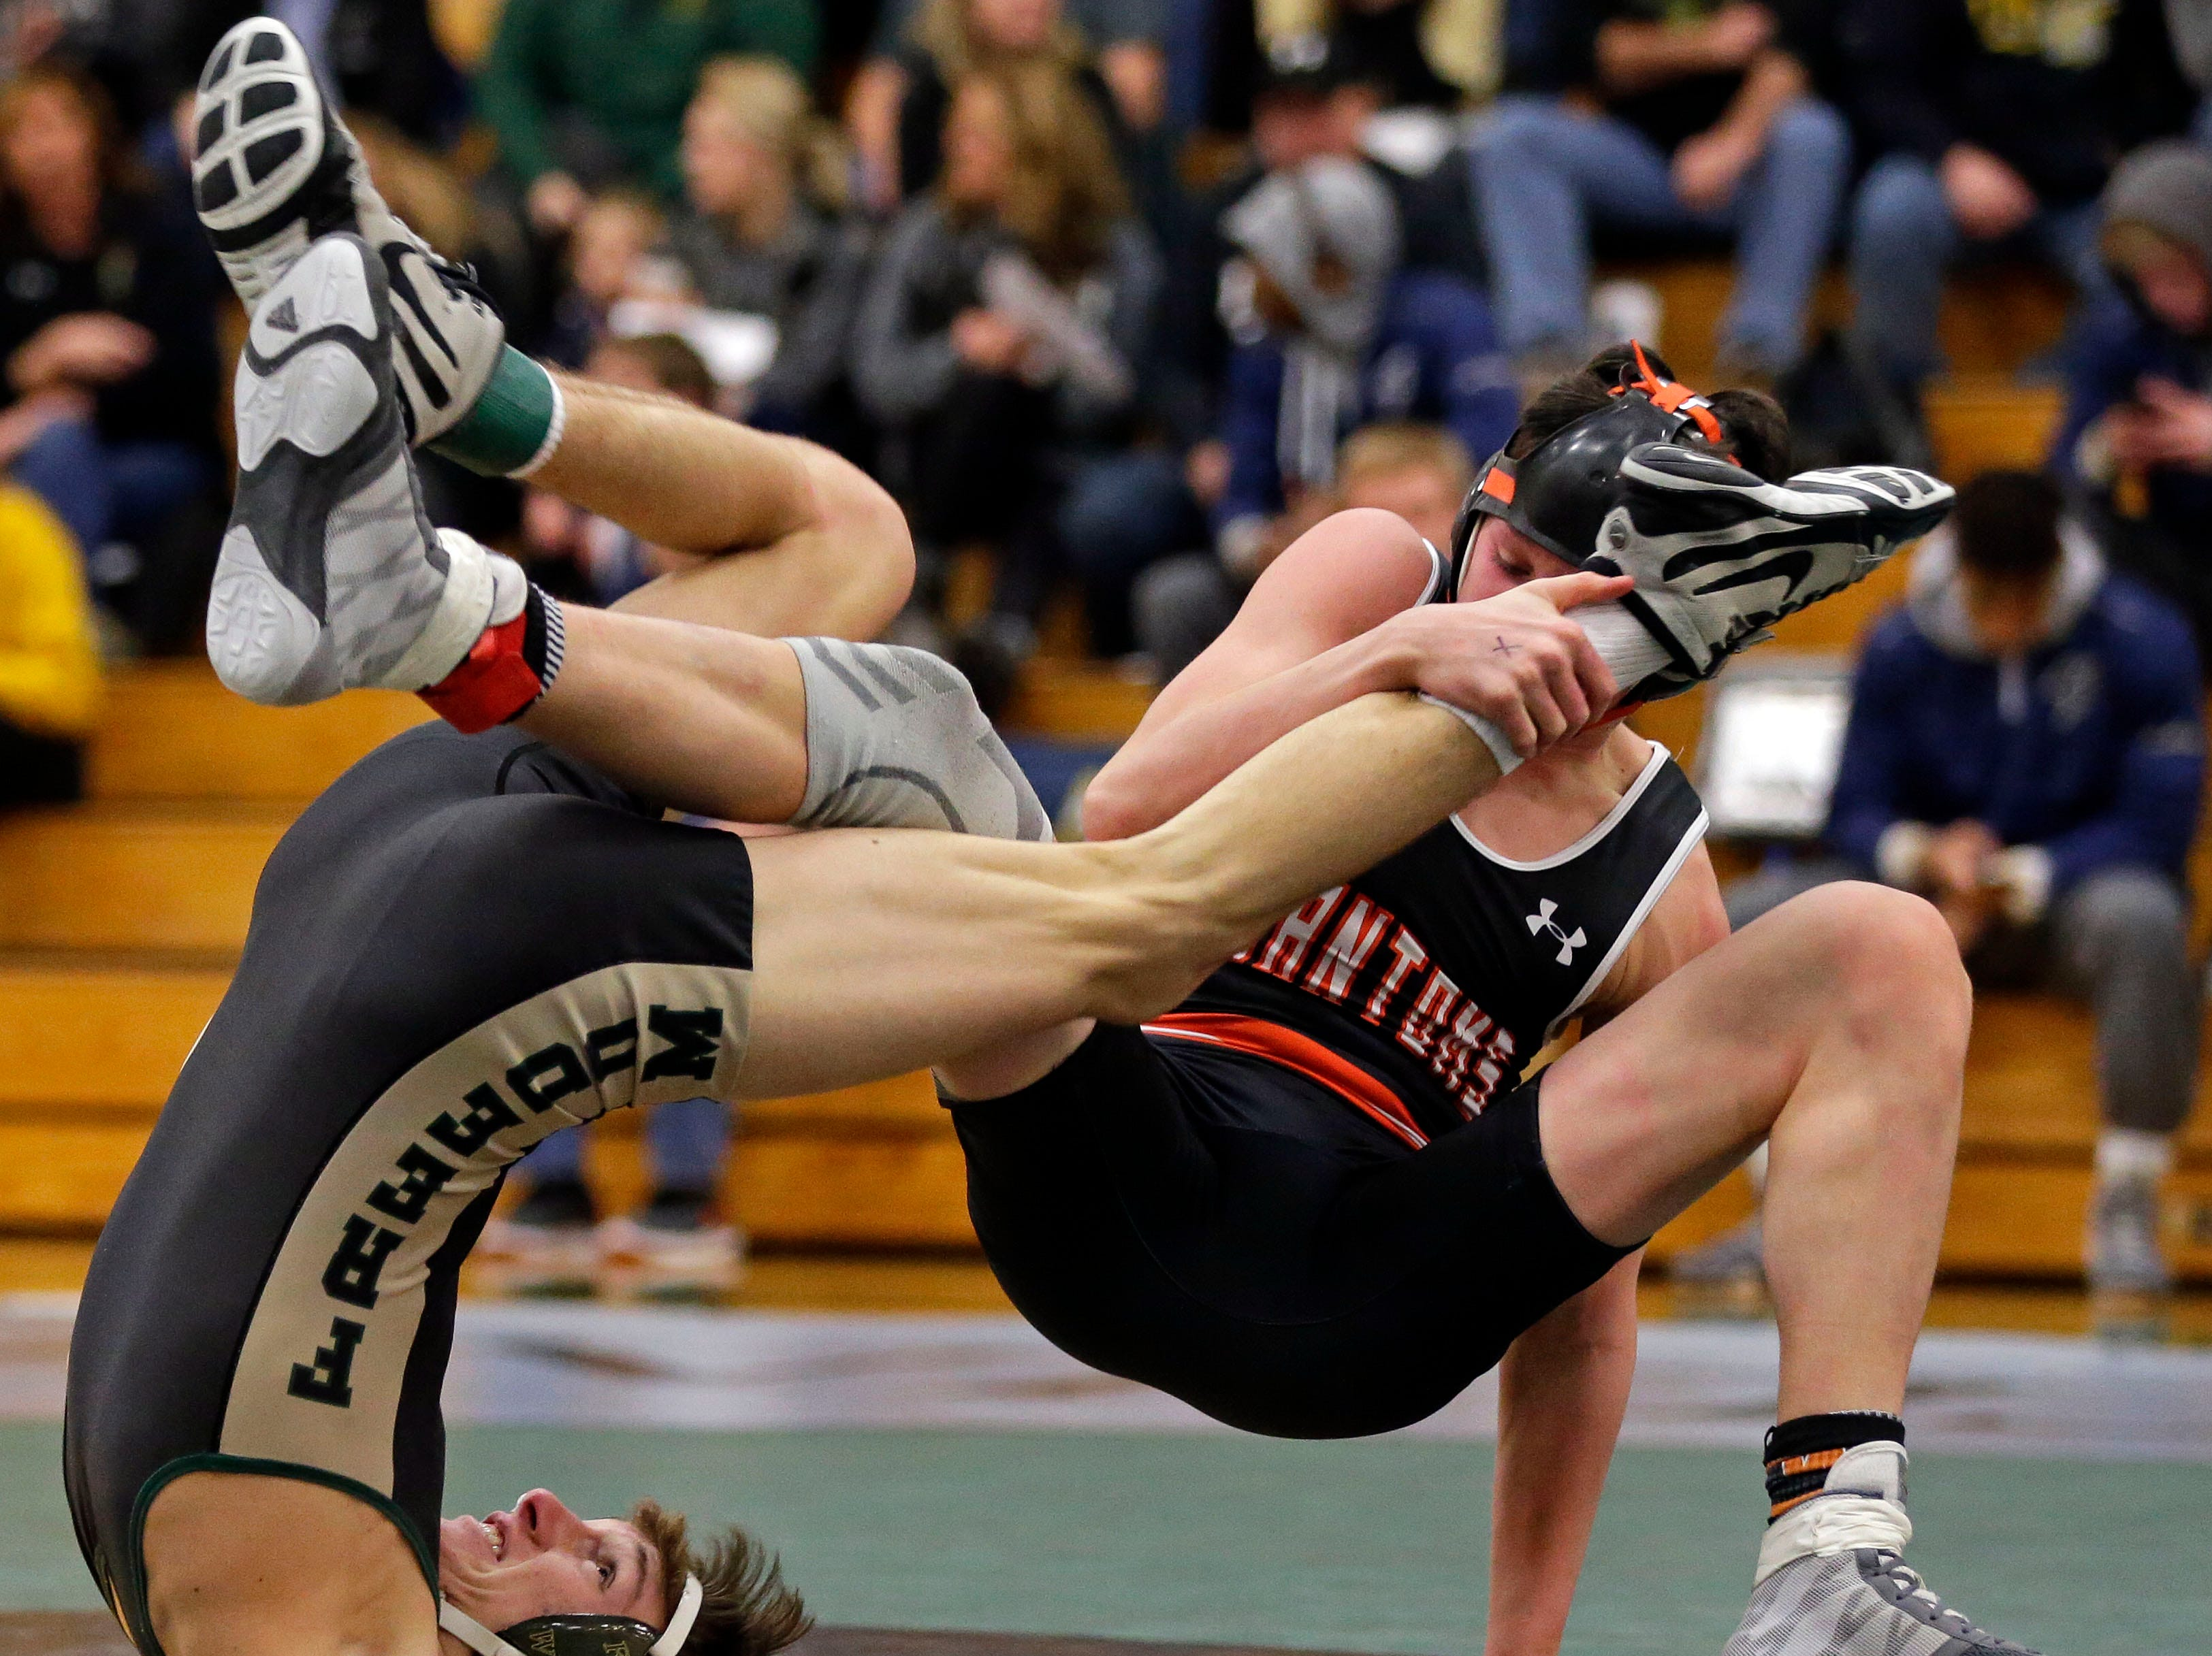 Colton Kater of Freedom wrestles Jake Hendricks of West De Pere in the 113 weight class during the 2019 Freedom Irish Invitational Saturday, January 12, 2019, at Freedom High School in Freedom, Wis.